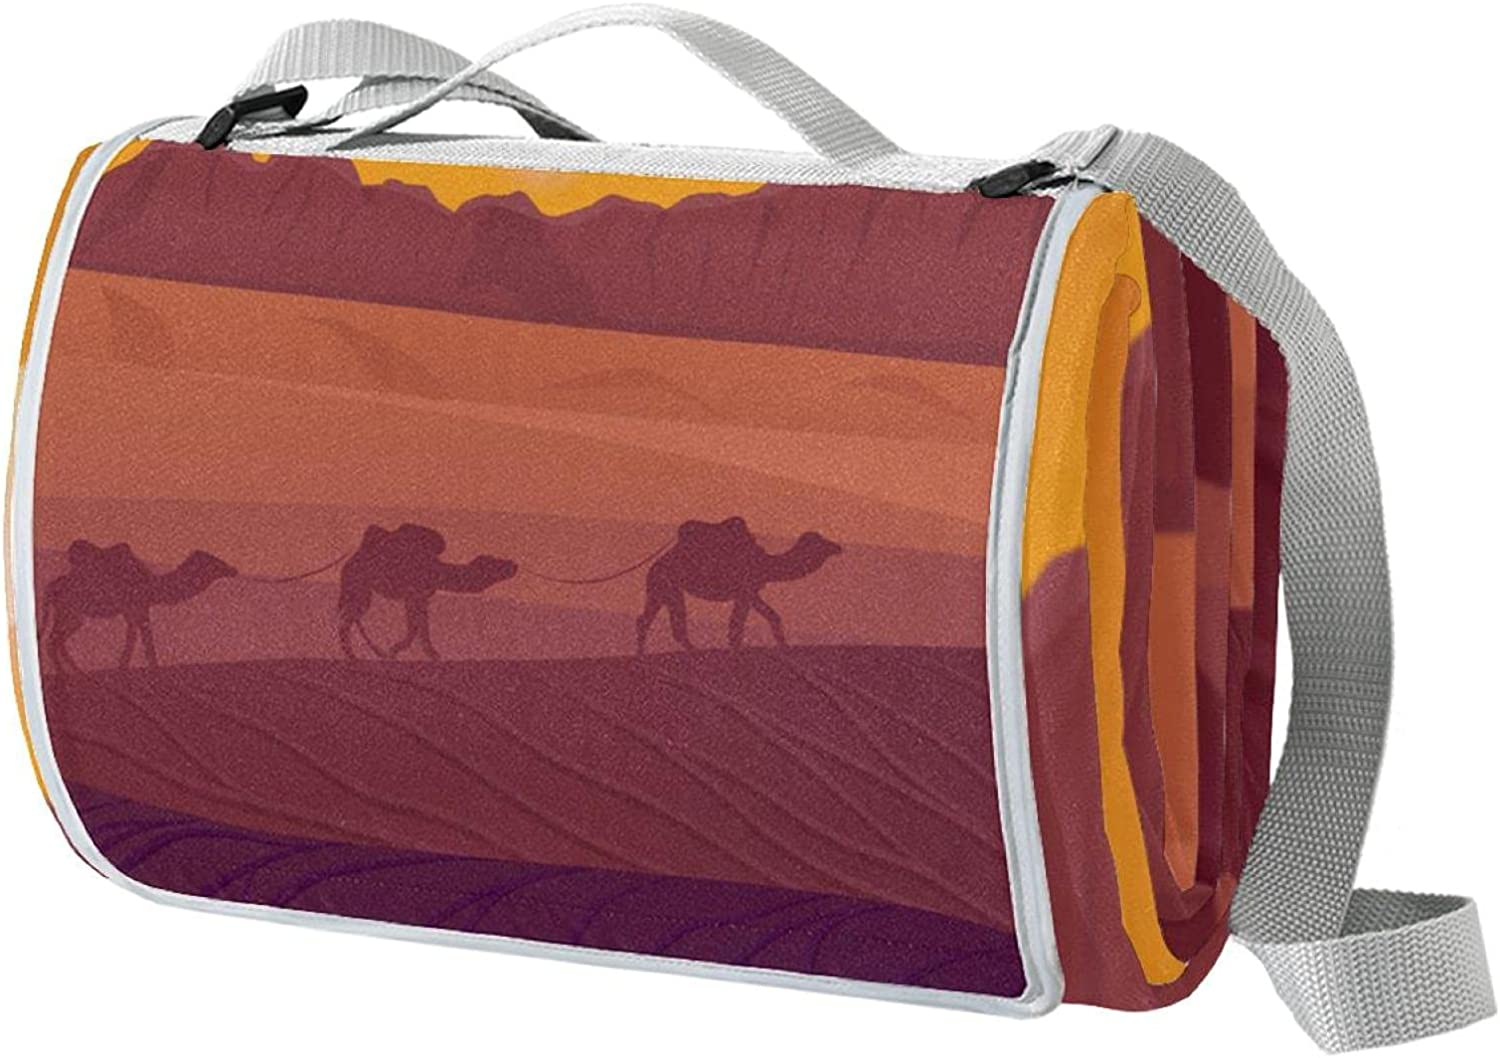 Desert Landscape Max 72% OFF with Camels Picnic Special price Foldable Large Floor 57 Mats